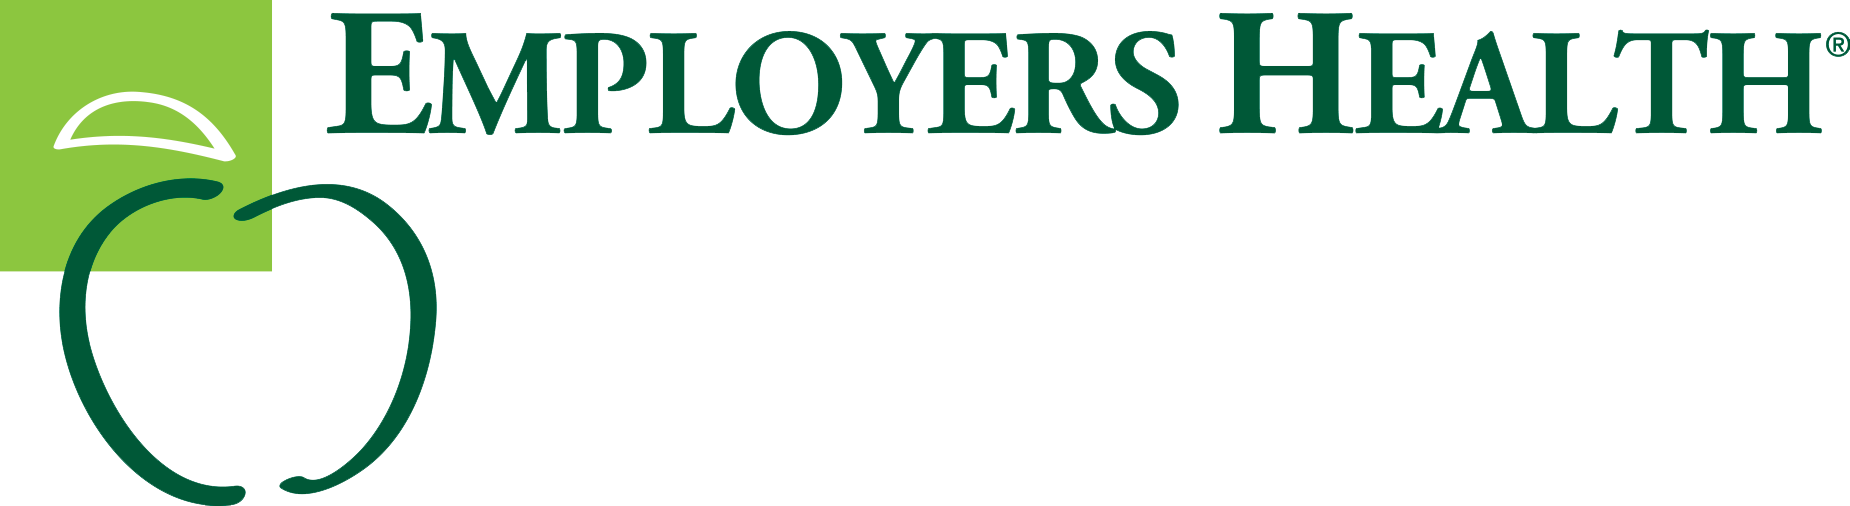 Employers Health logo